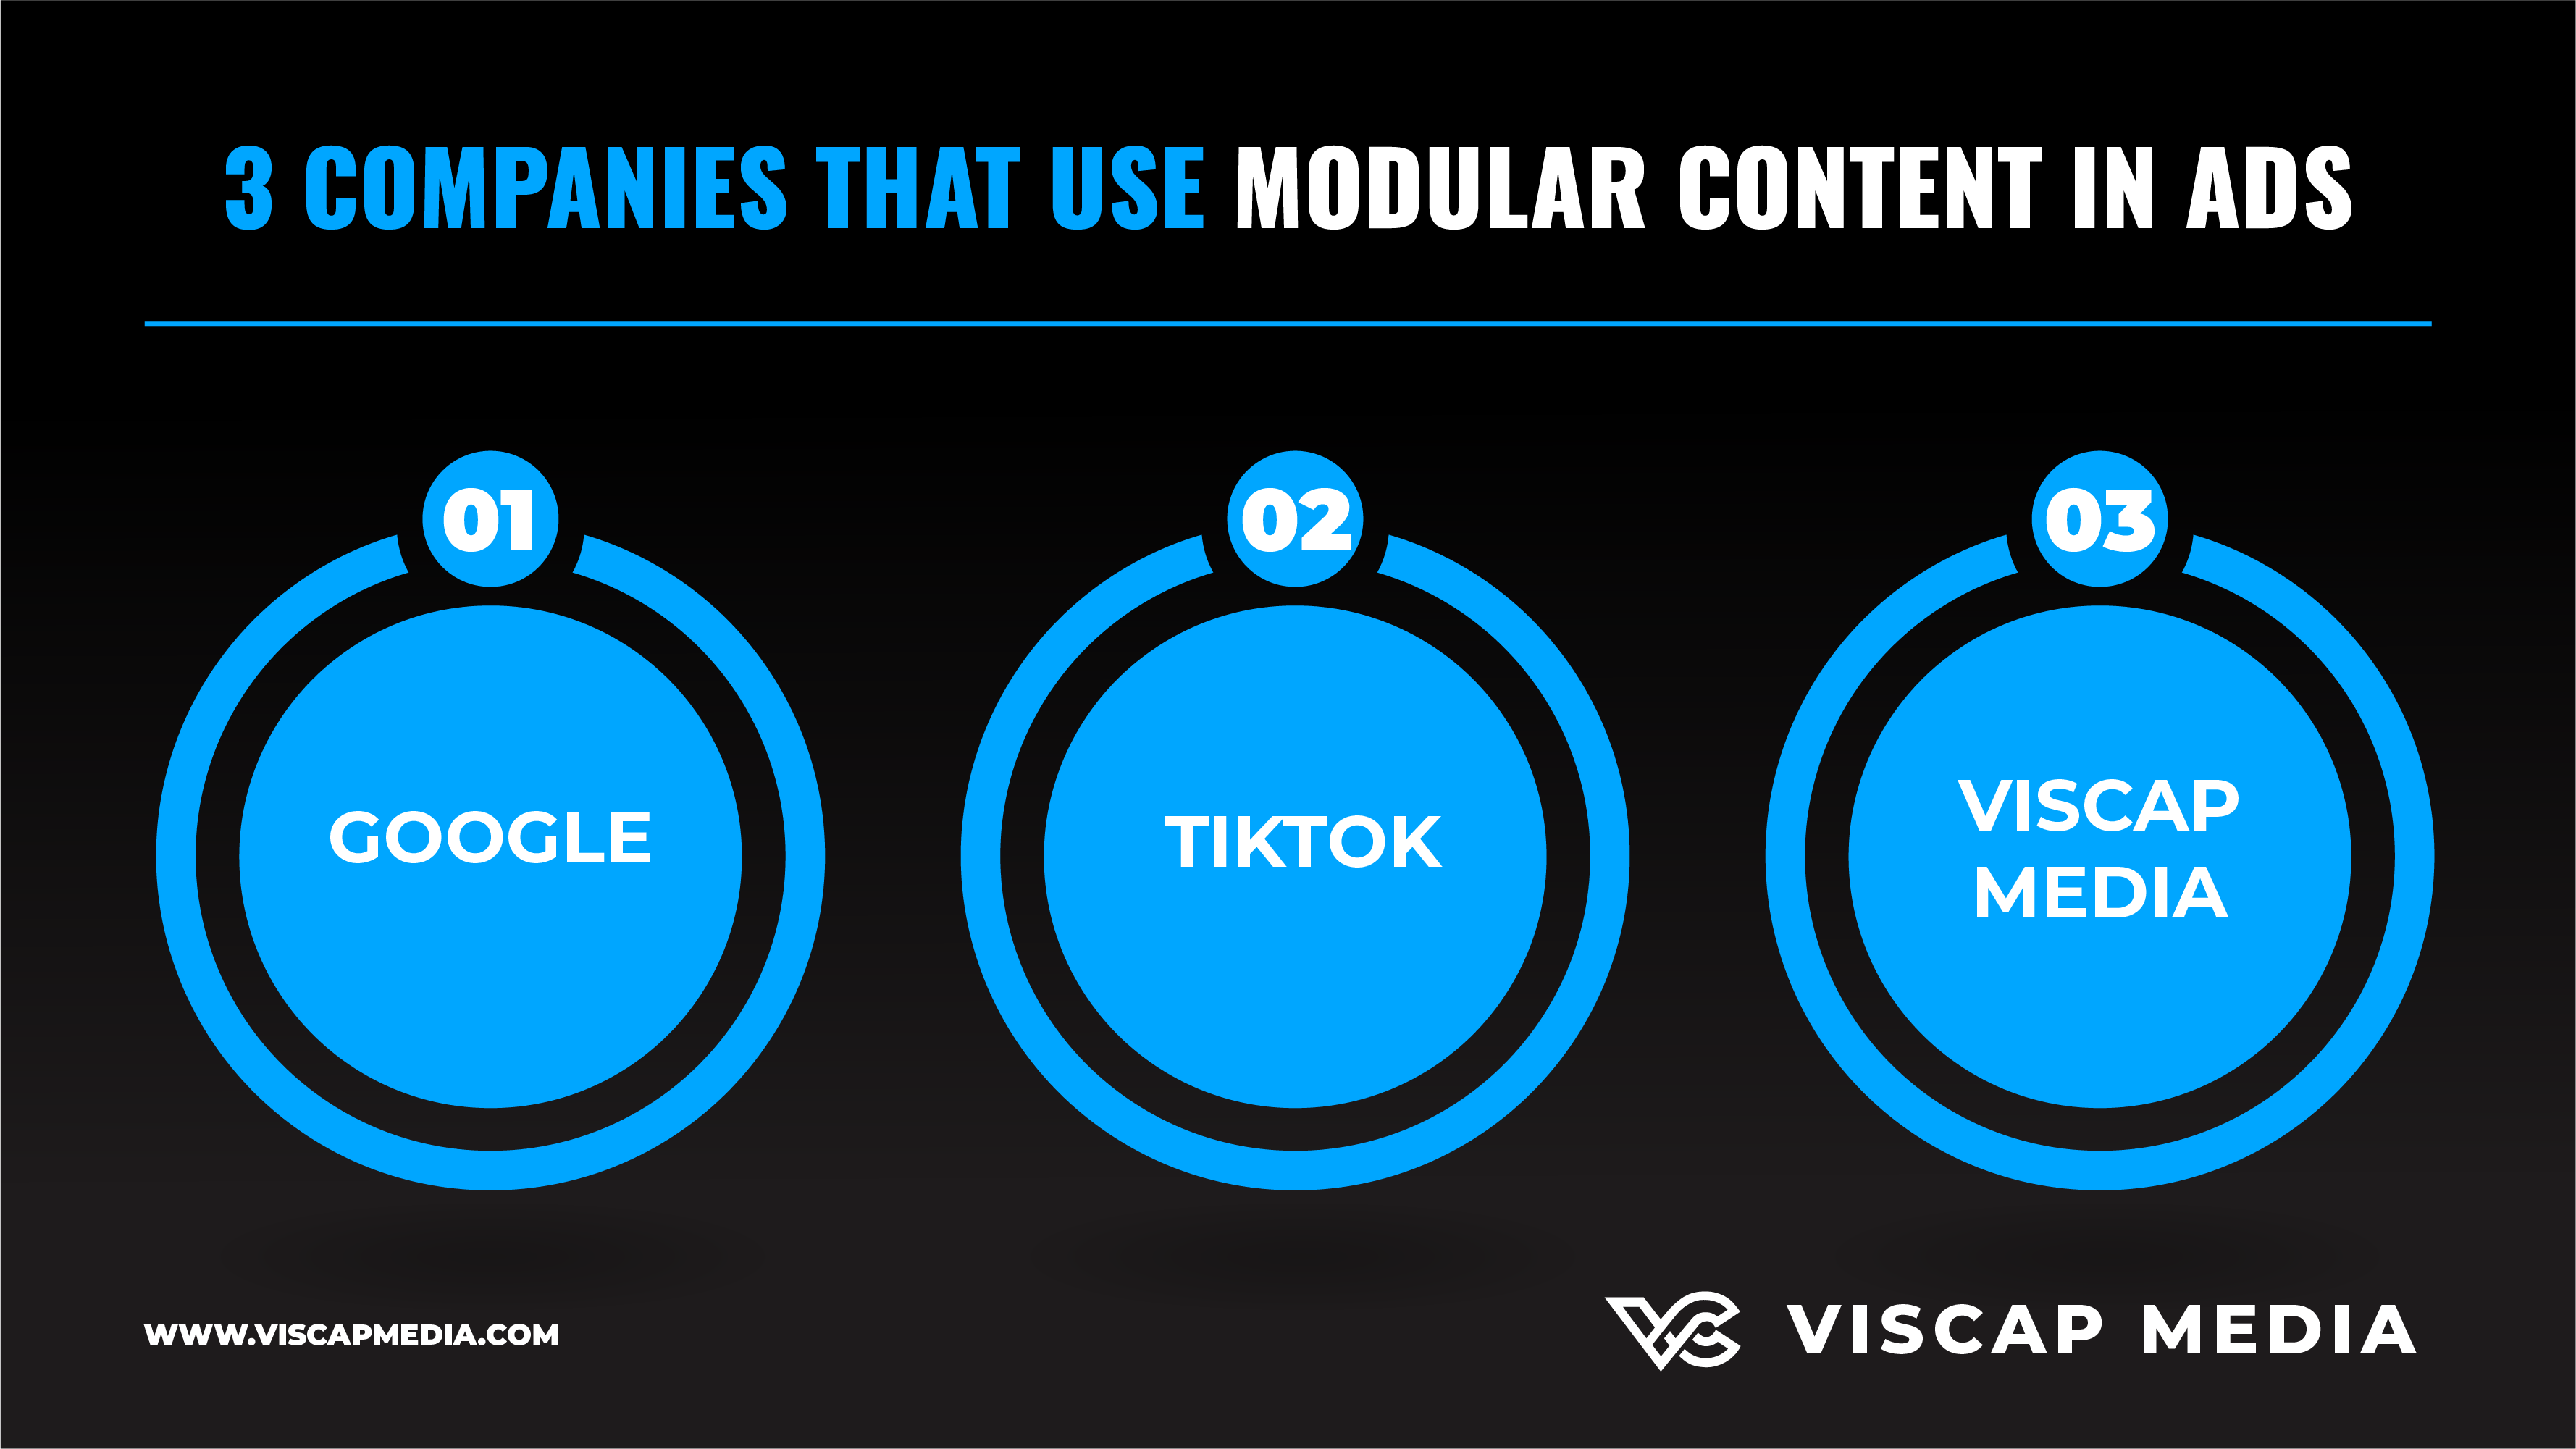 3 Companies That Use Modular Content In Ads Infographic